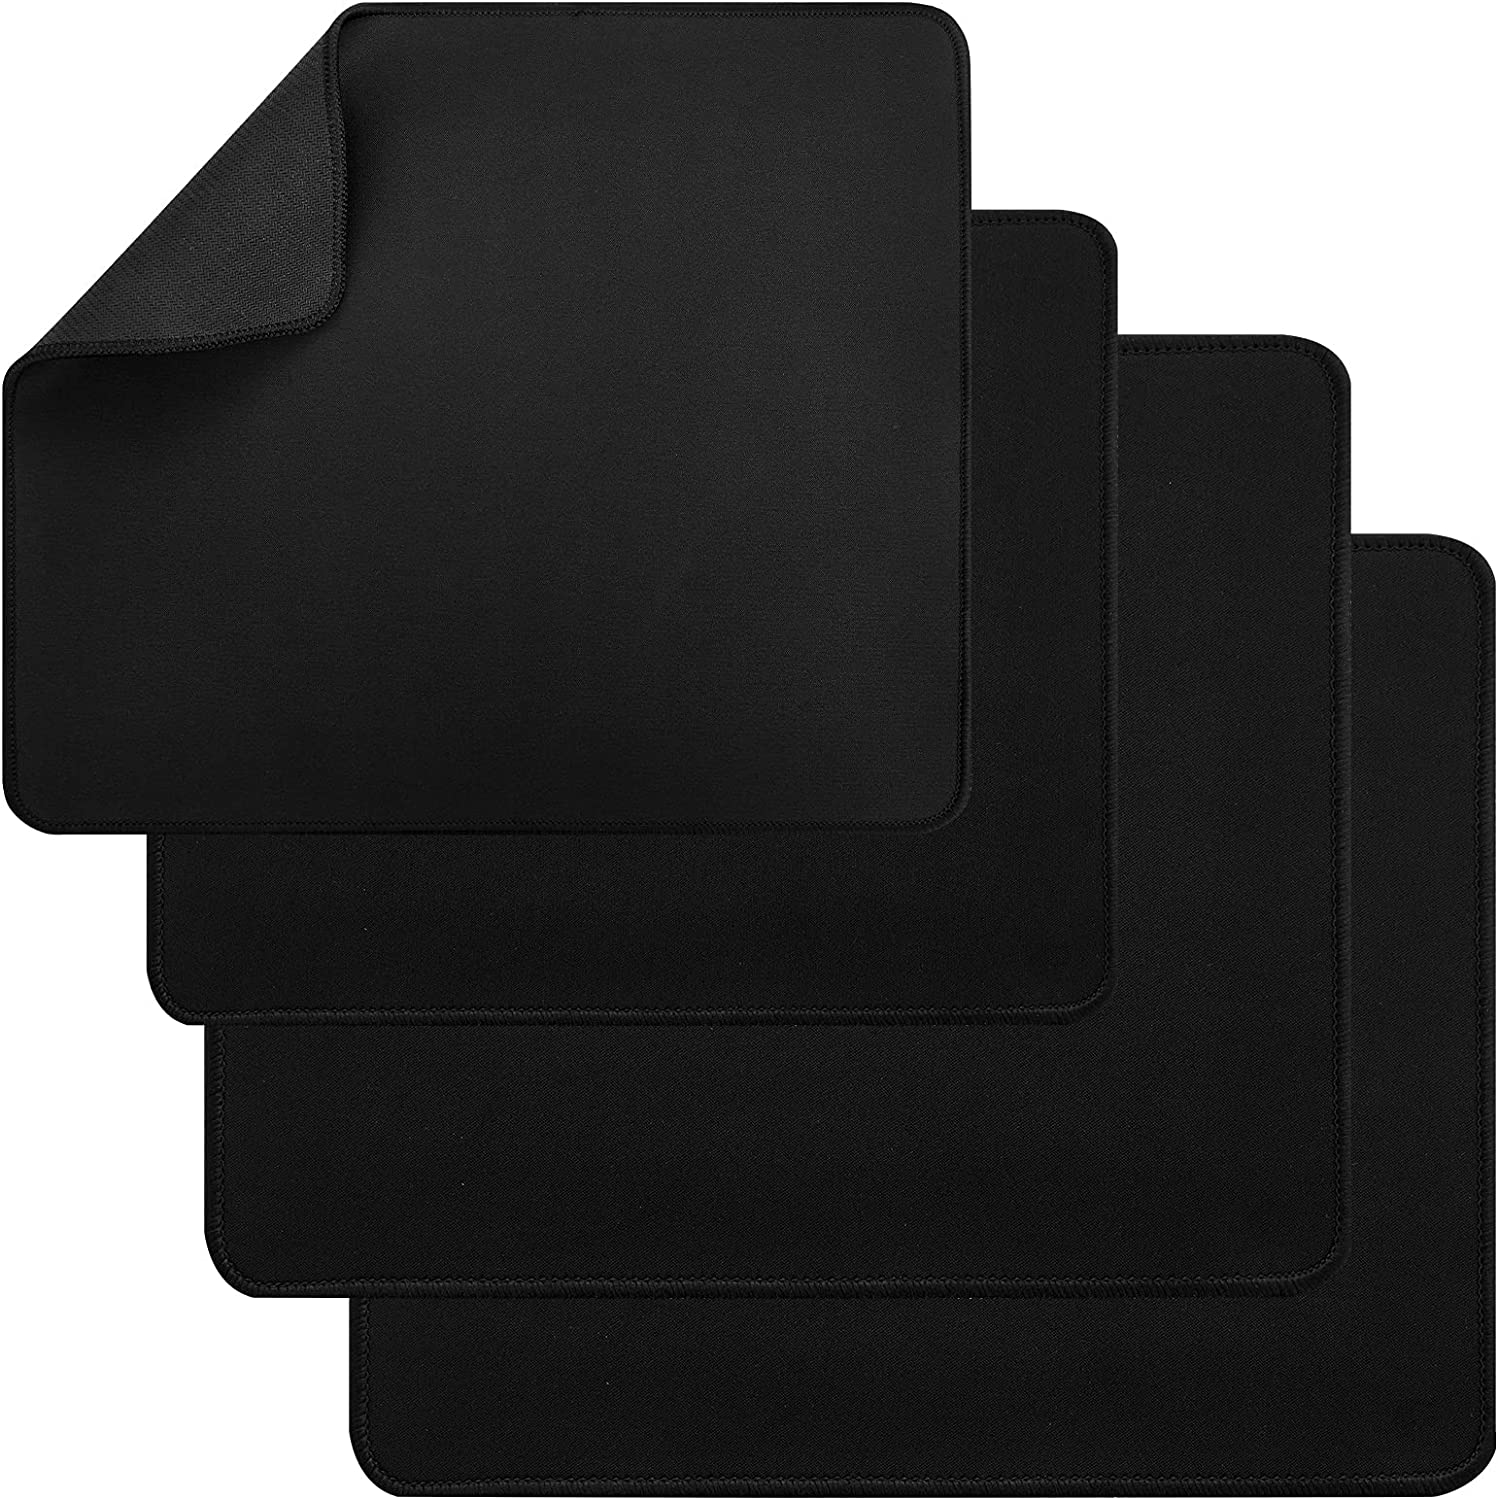 4 Pack Kitchen Appliance Sliding Mats,Slide Mats for Moving Small Appliances - Slider for Coffee Makers, Blenders, Stand Mixers, Toasters